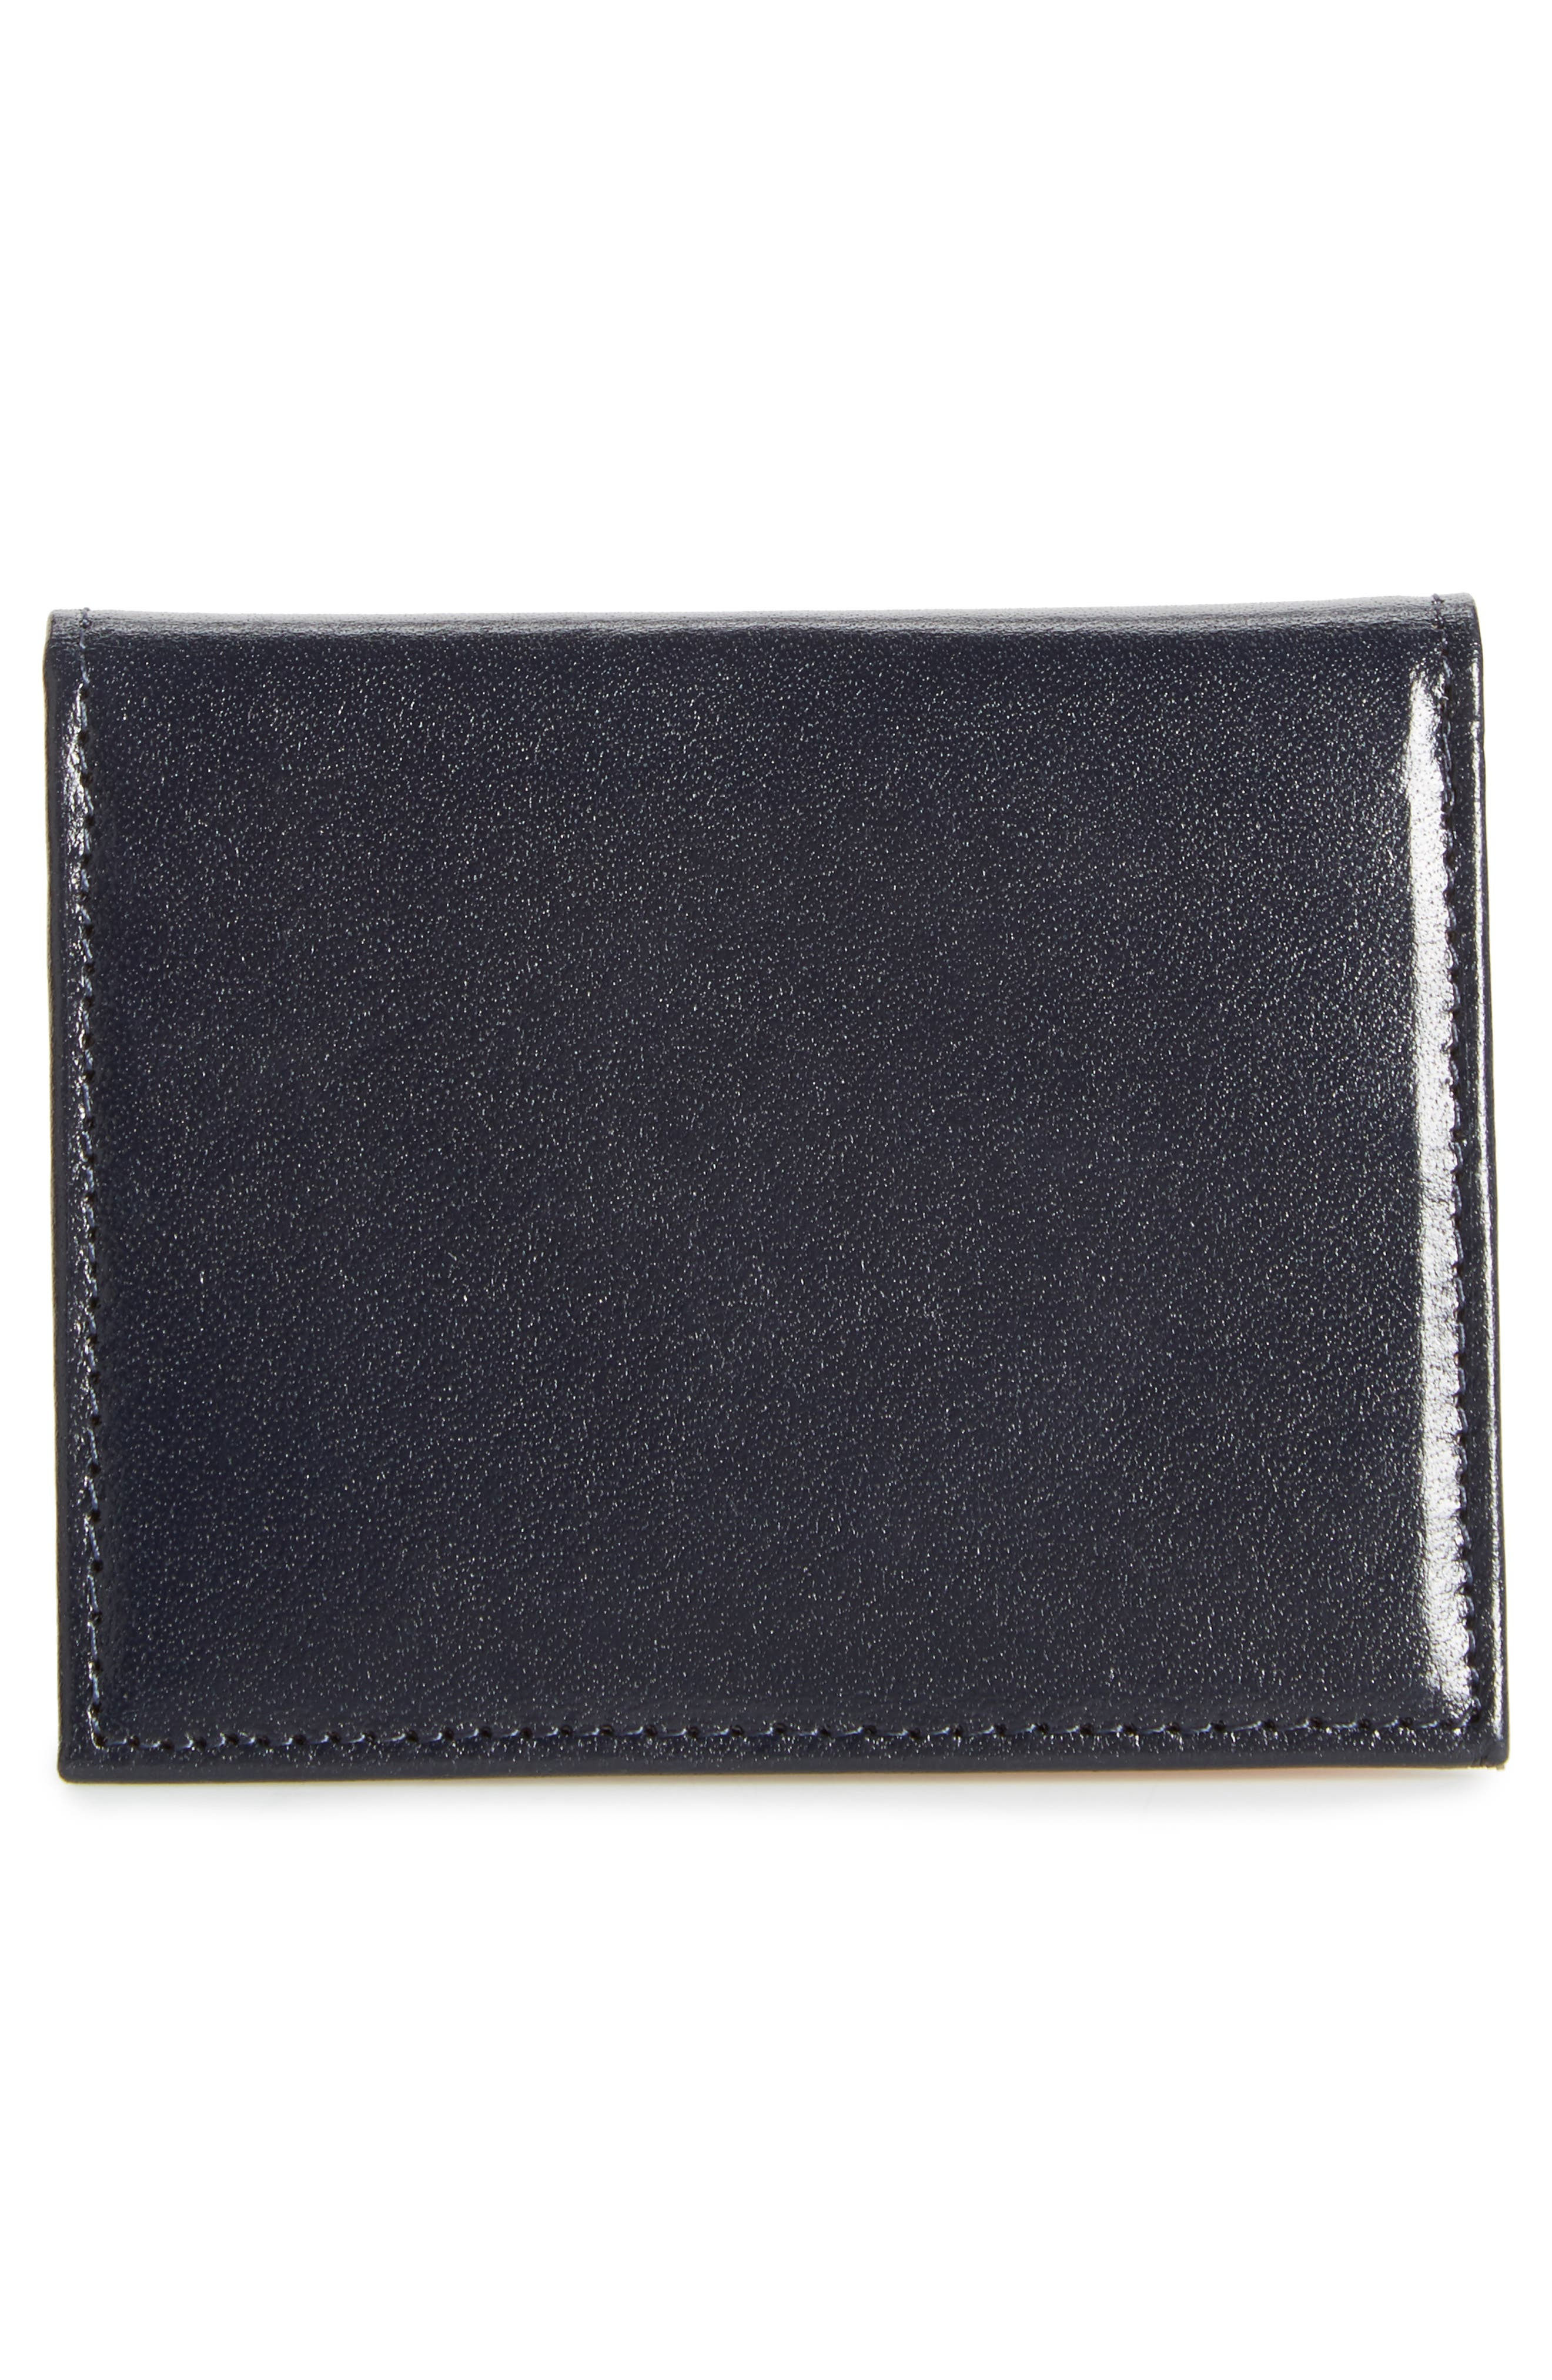 Alternate Image 3  - Ted Baker London Brights Leather Card Case